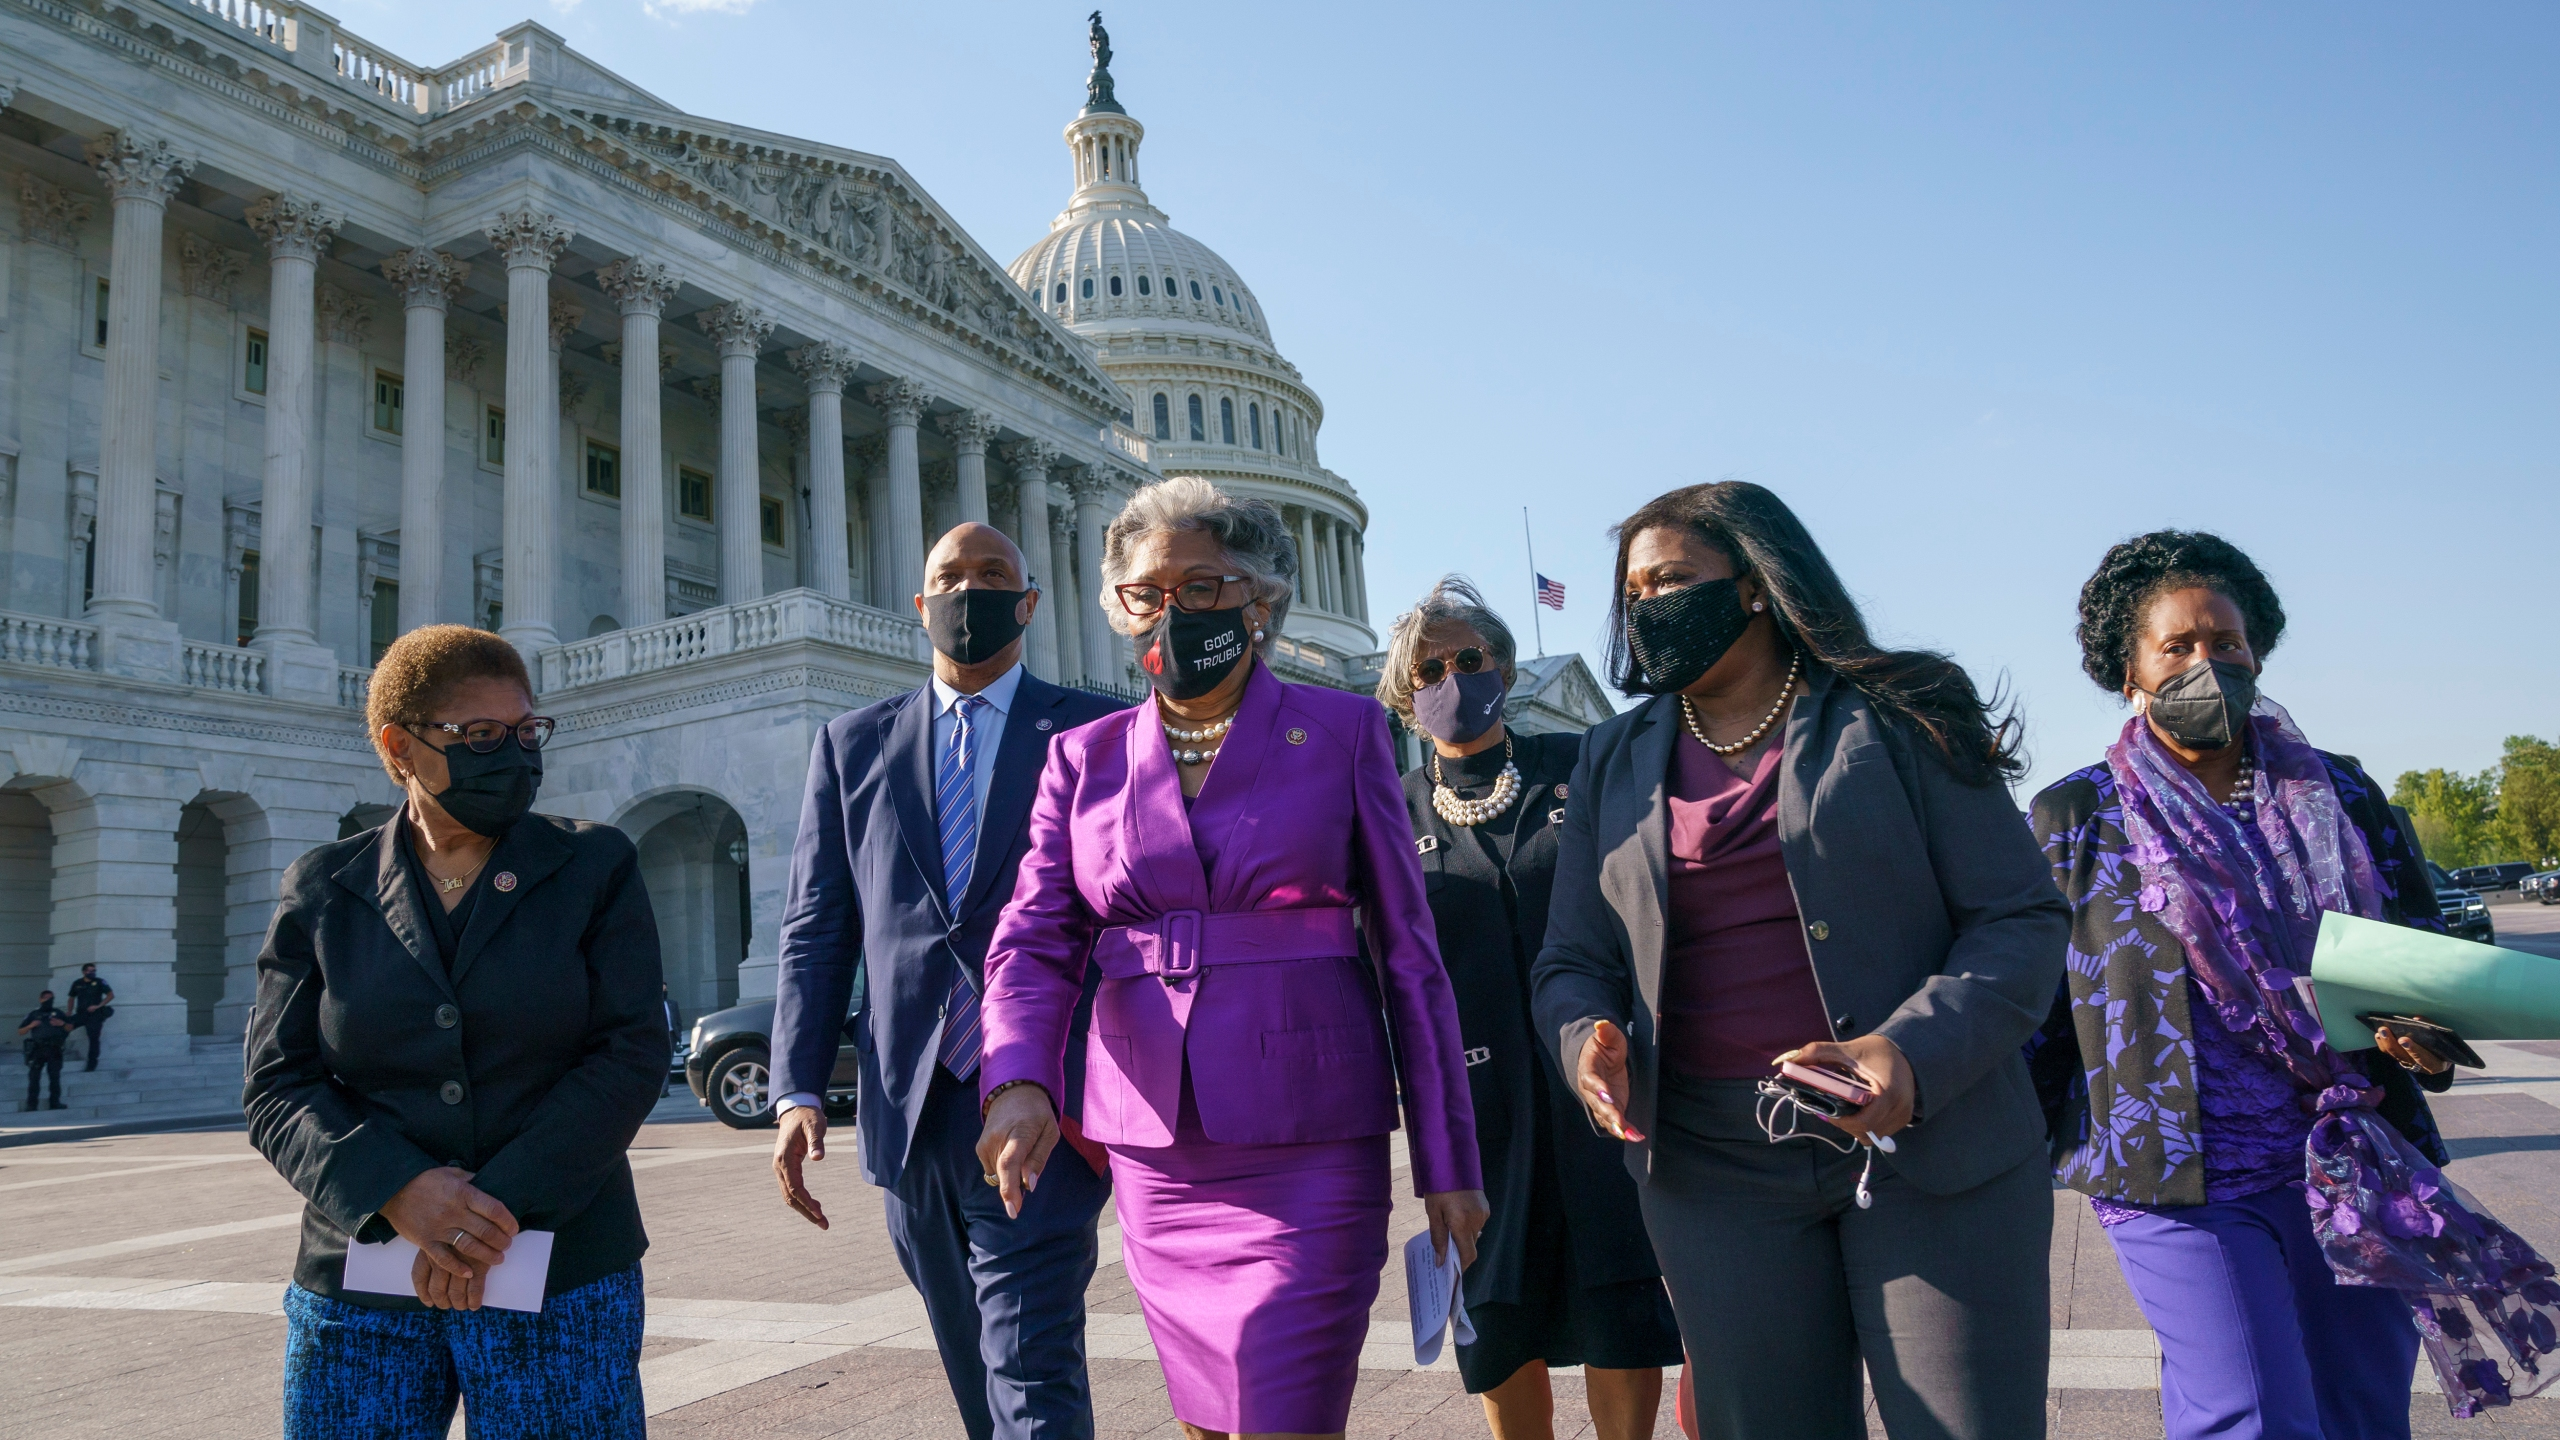 Members of the Congressional Black Caucus walk to make a make a statement on Capitol Hill following the guilty verdict in the murder trial of former Minneapolis police Officer Derek Chauvin in the death of George Floyd on April 20, 2021. From left are Rep. Karen Bass, D-Calif., Rep. Andre Carson, D-Ind. Rep. Joyce Beatty, D-Ohio, chair of the Congressional Black Caucus, Rep. Brenda Lawrence, D-Mich., Rep. Cori Bush, D-Mo., and Rep. Sheila Jackson Lee, D-Tex. (J. Scott Applewhite / Associated Press)